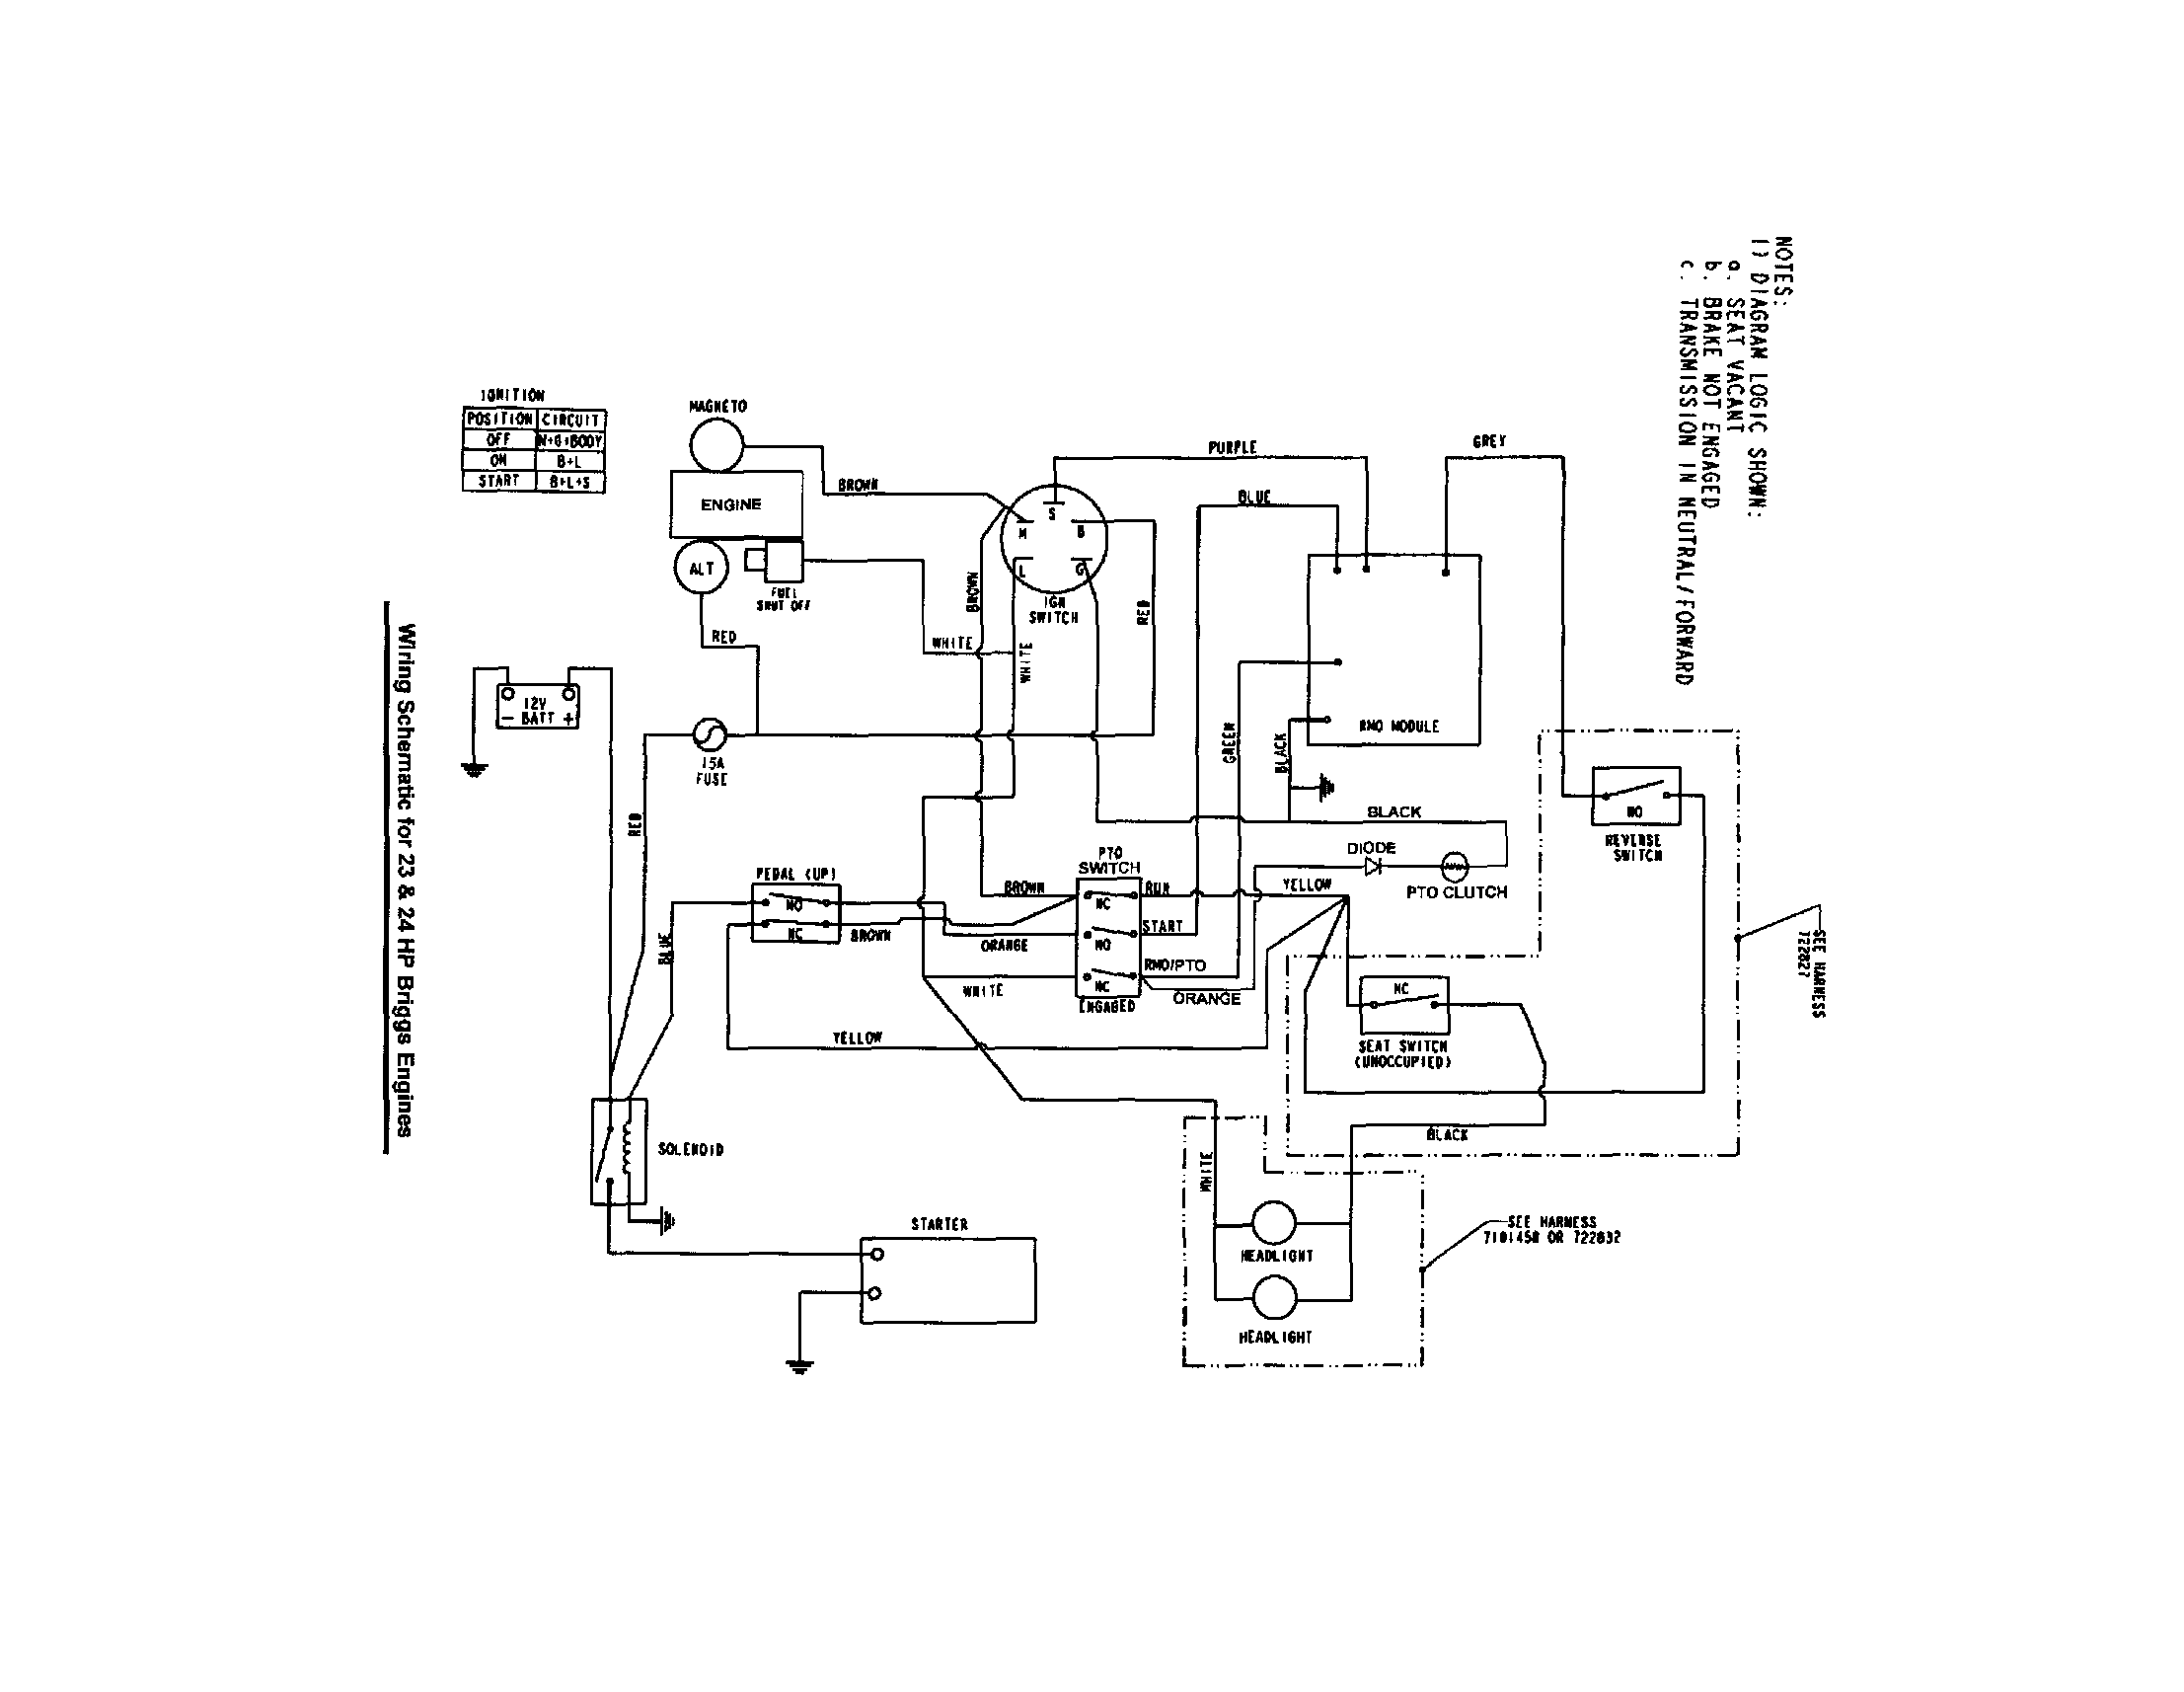 snapper wiring harness wiring diagram img 15488 snapper wiring harness [ 2213 x 1714 Pixel ]